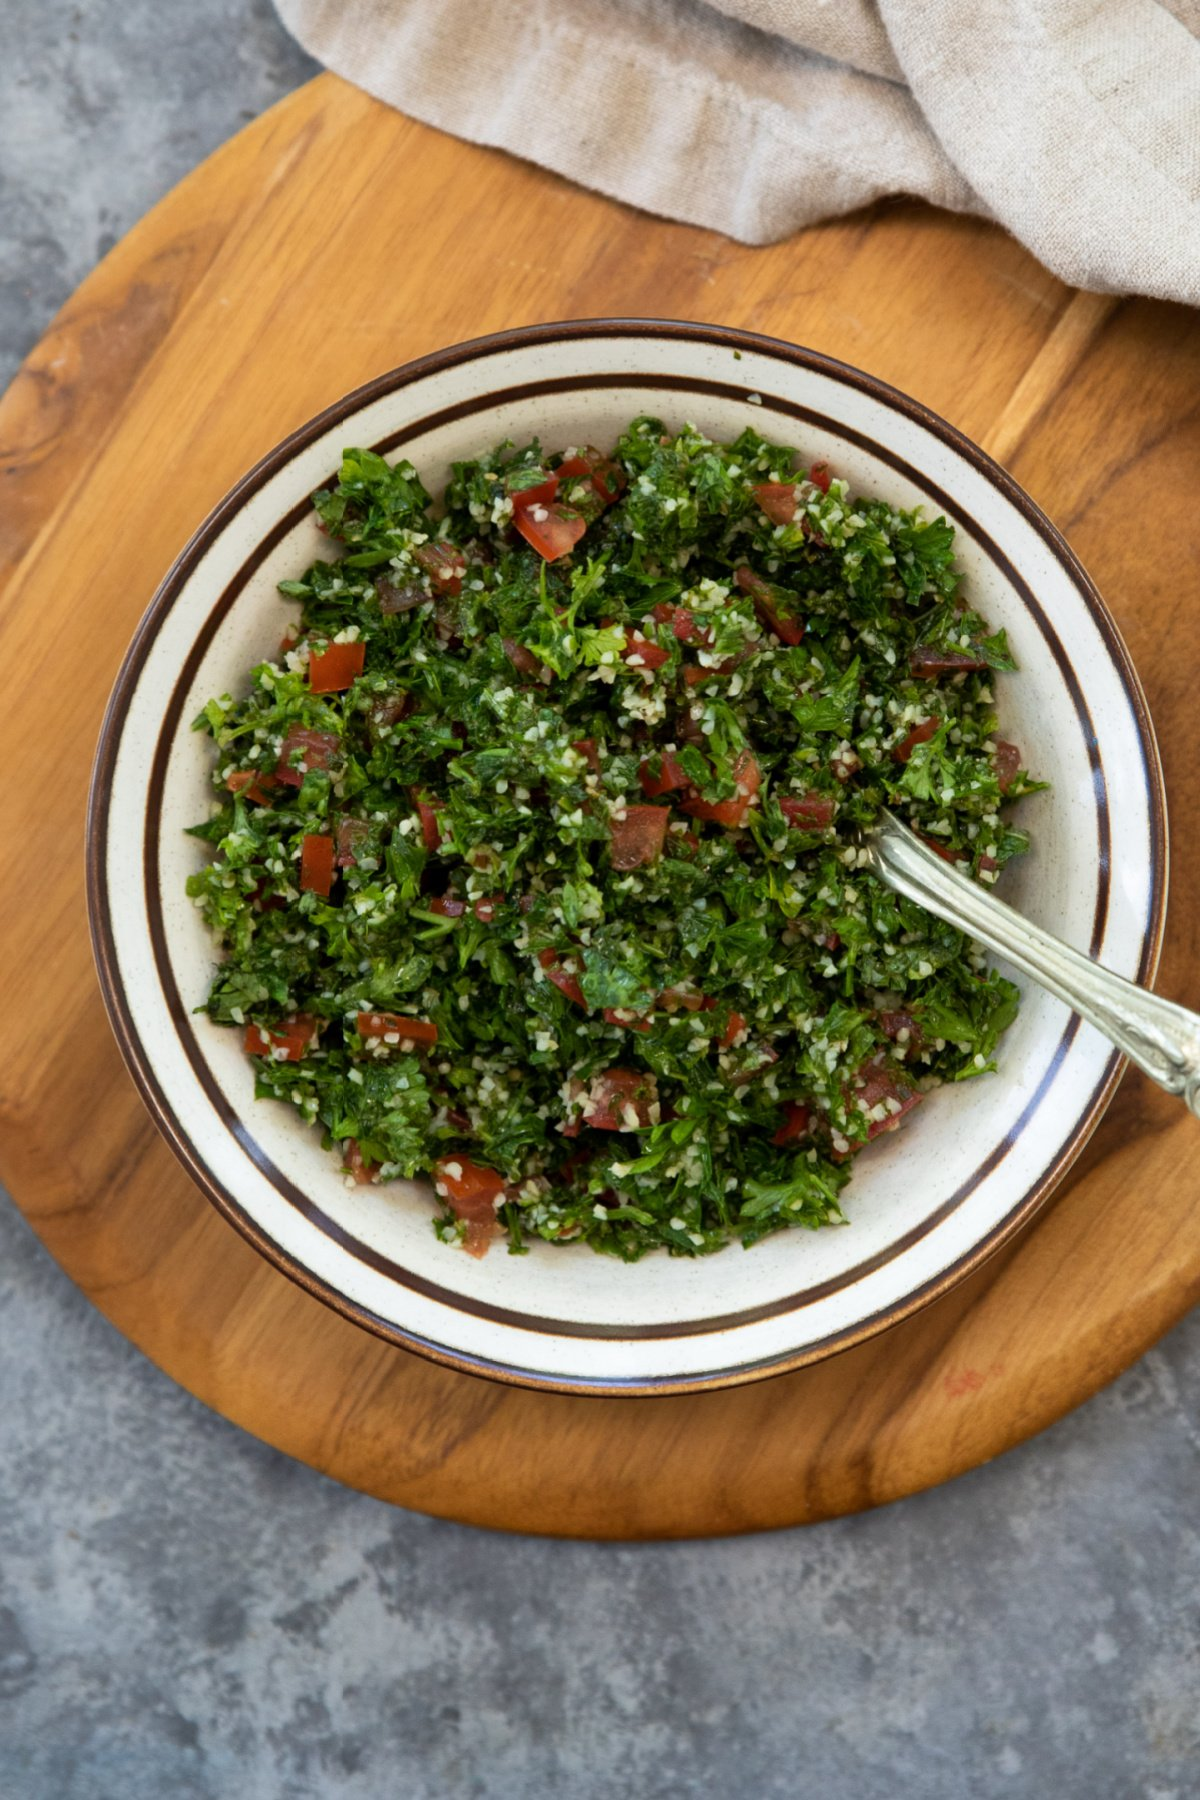 a bowl of tabbouleh salad on a wooden board.